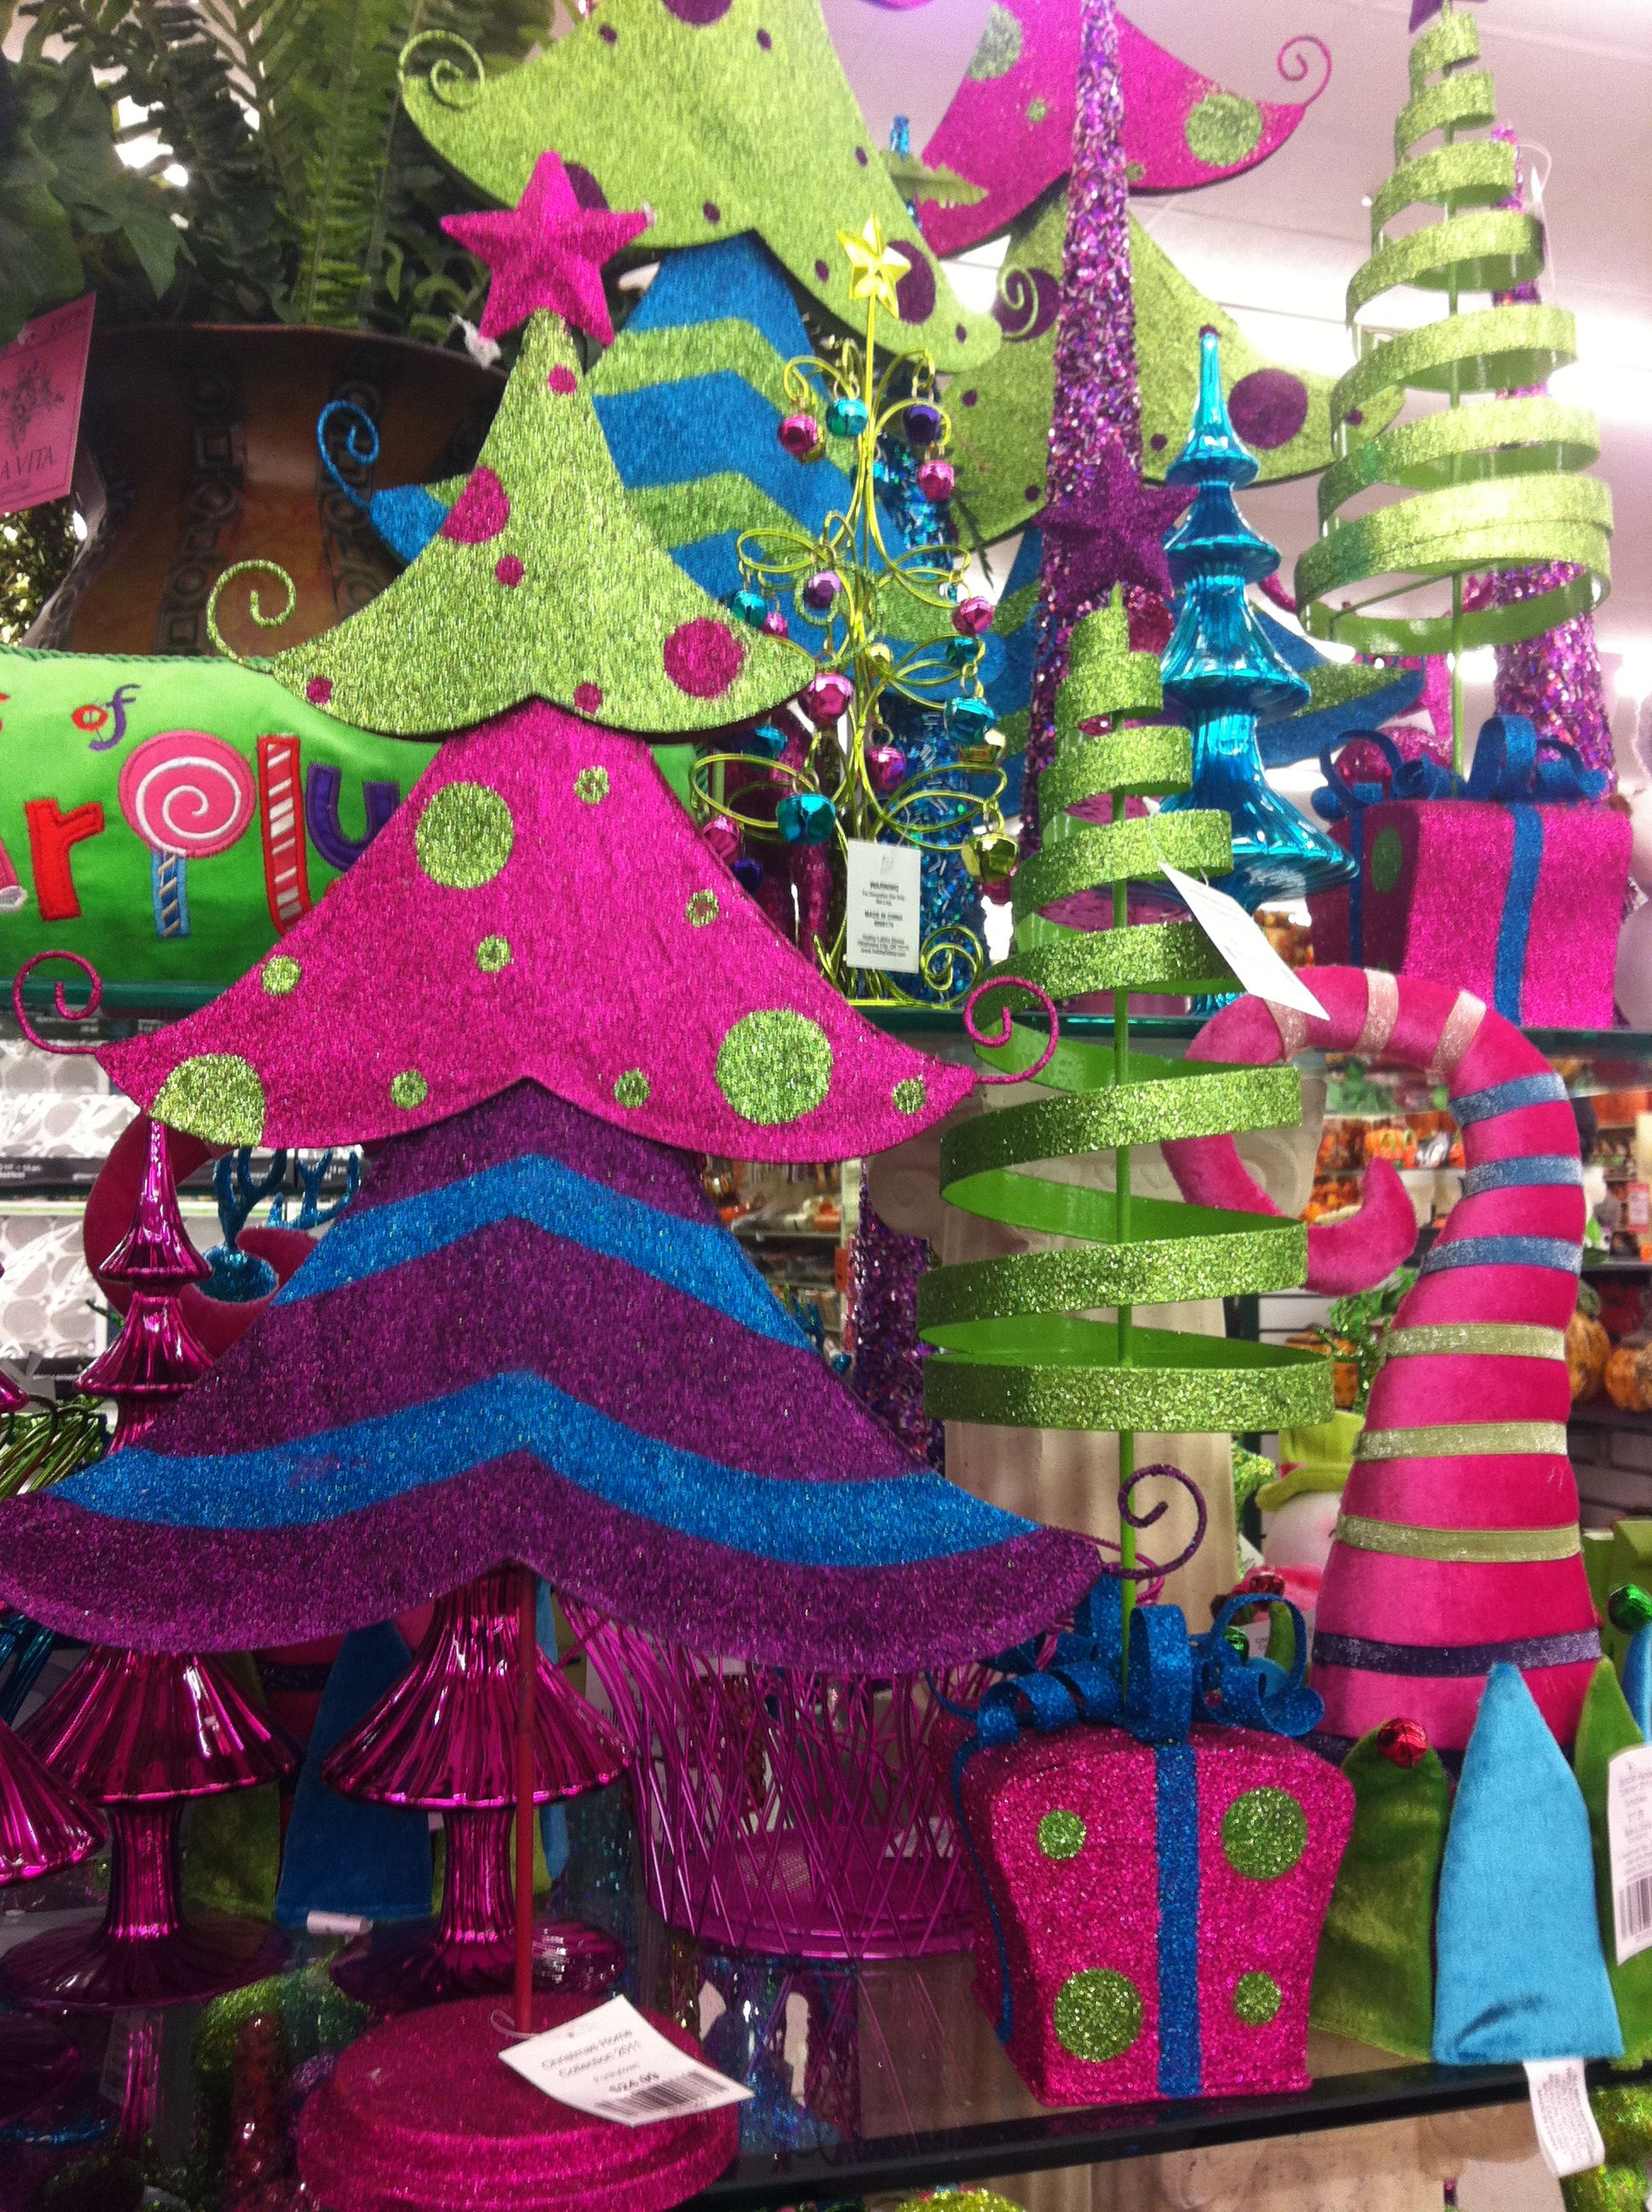 Fun Bright And Colorful Christmas Decorations At Hobby